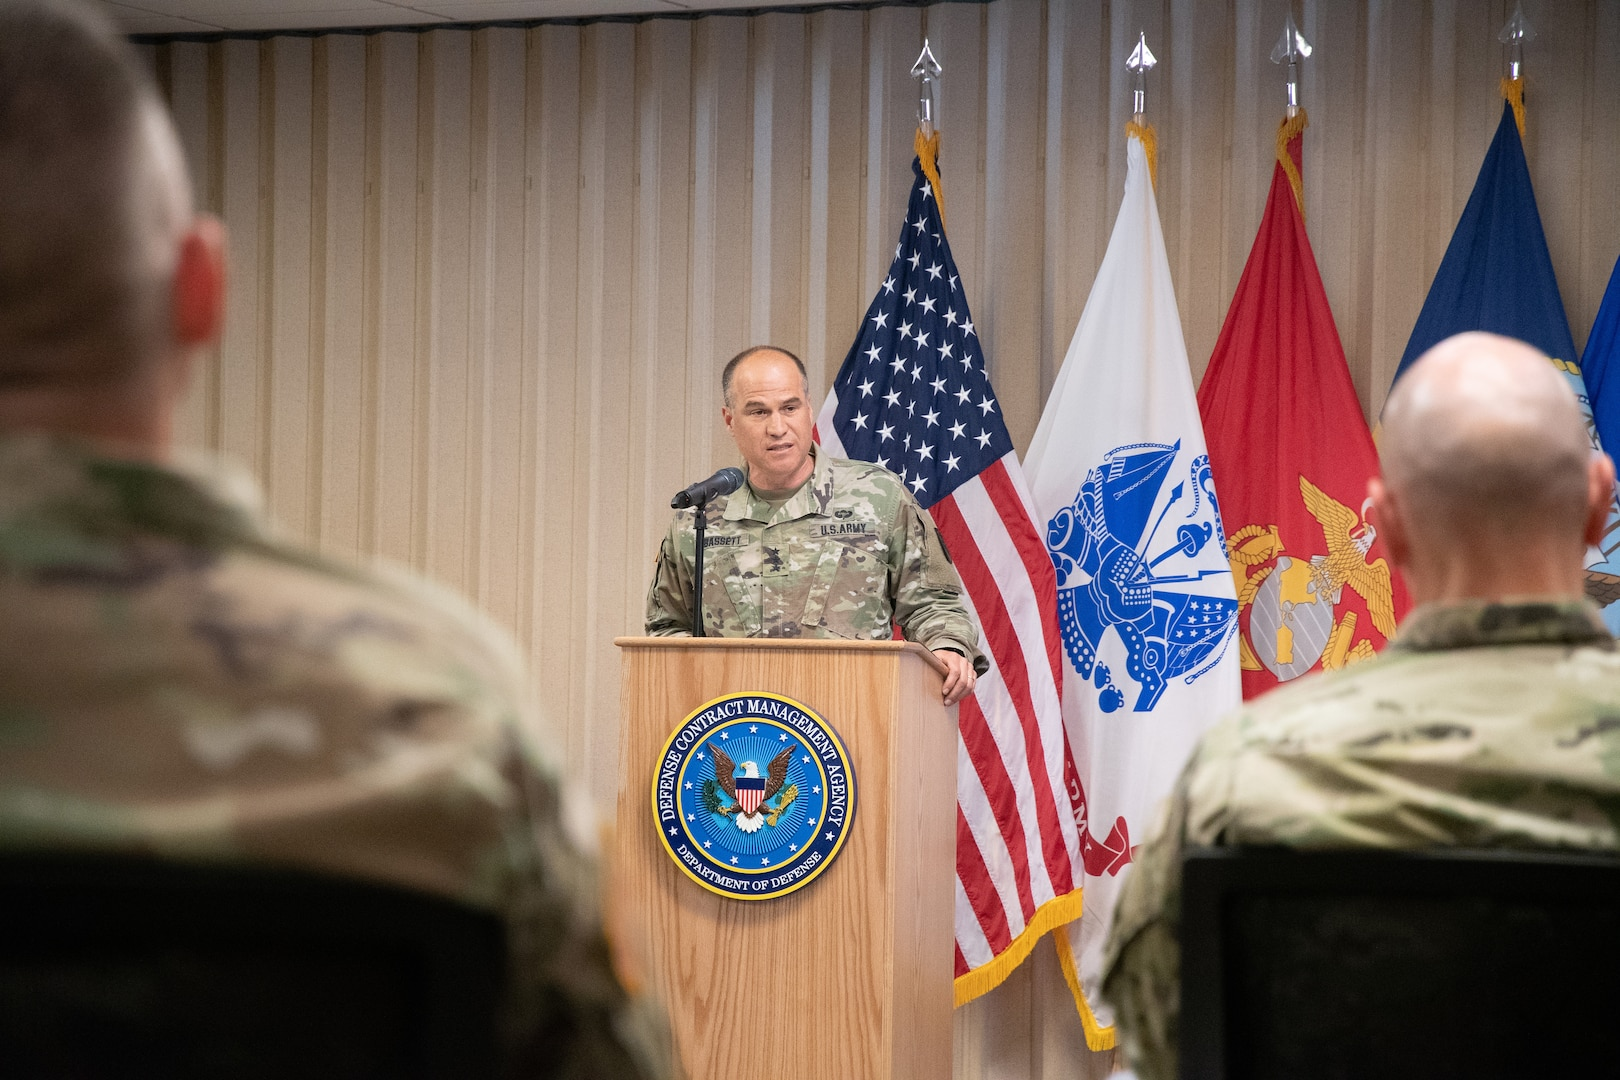 An Army general speaks from a podium in front of flags